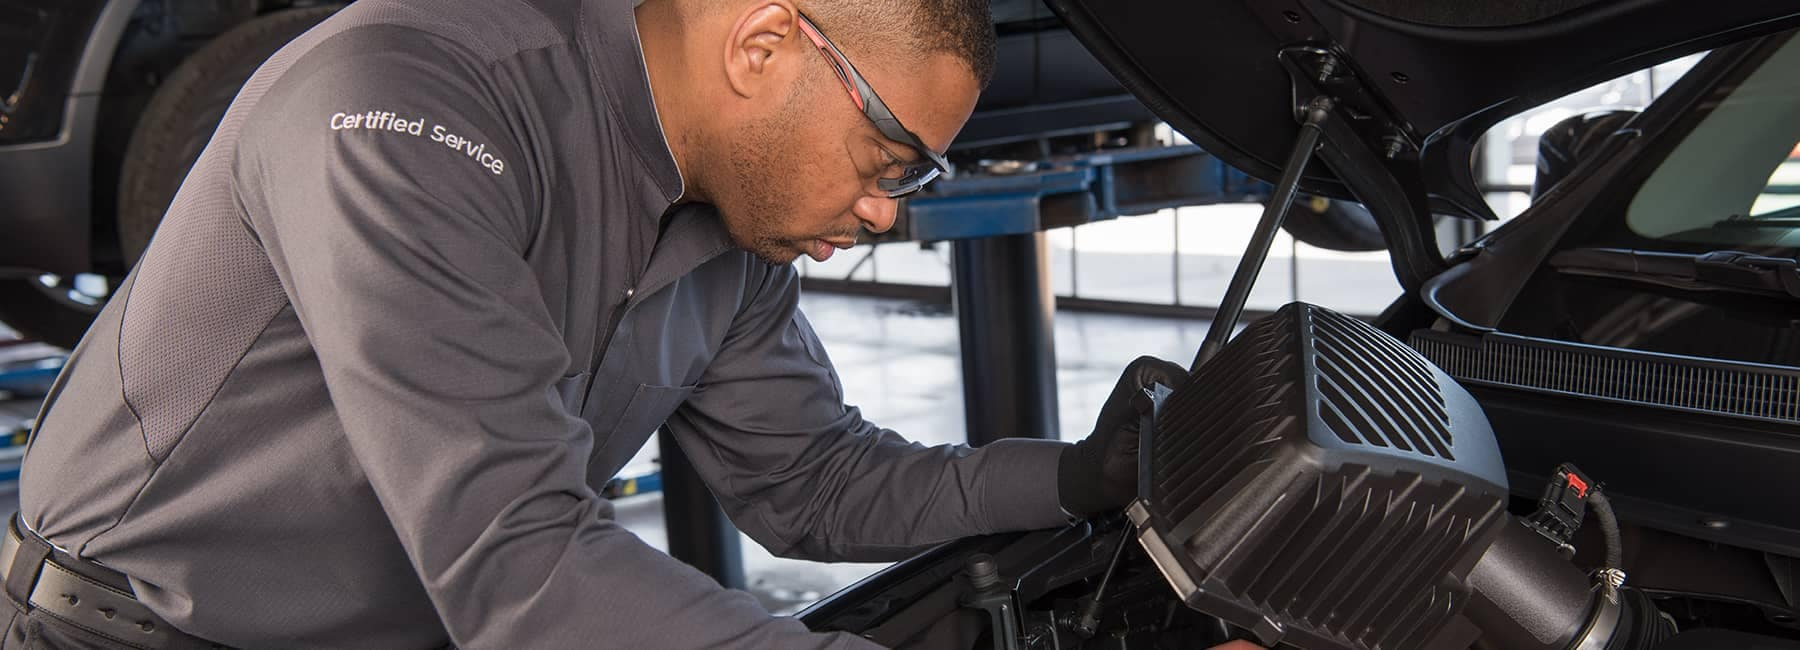 GM certified technician working on car engine